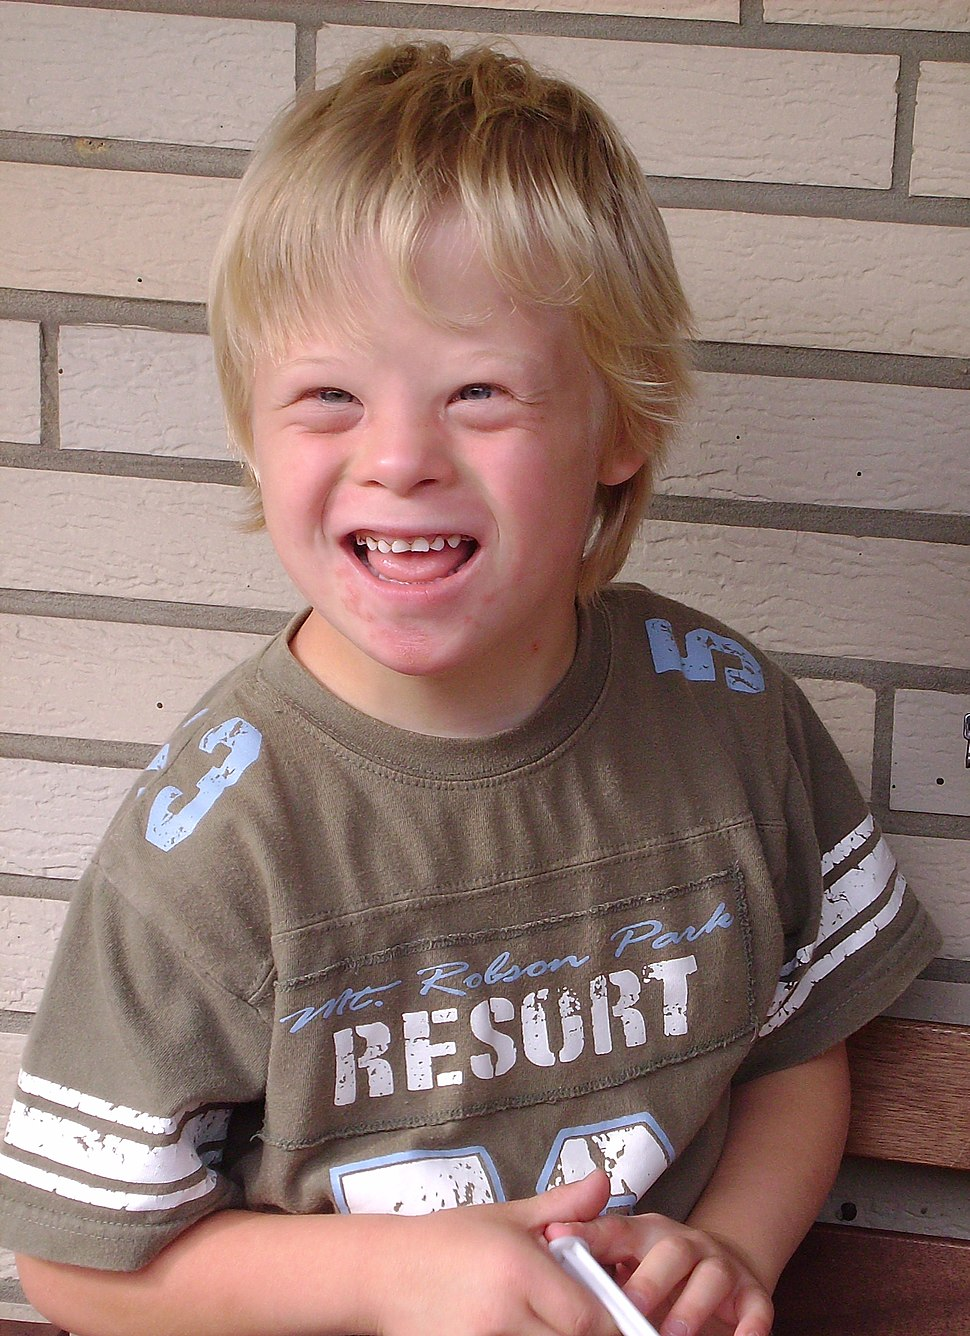 Boy with Down Syndrome